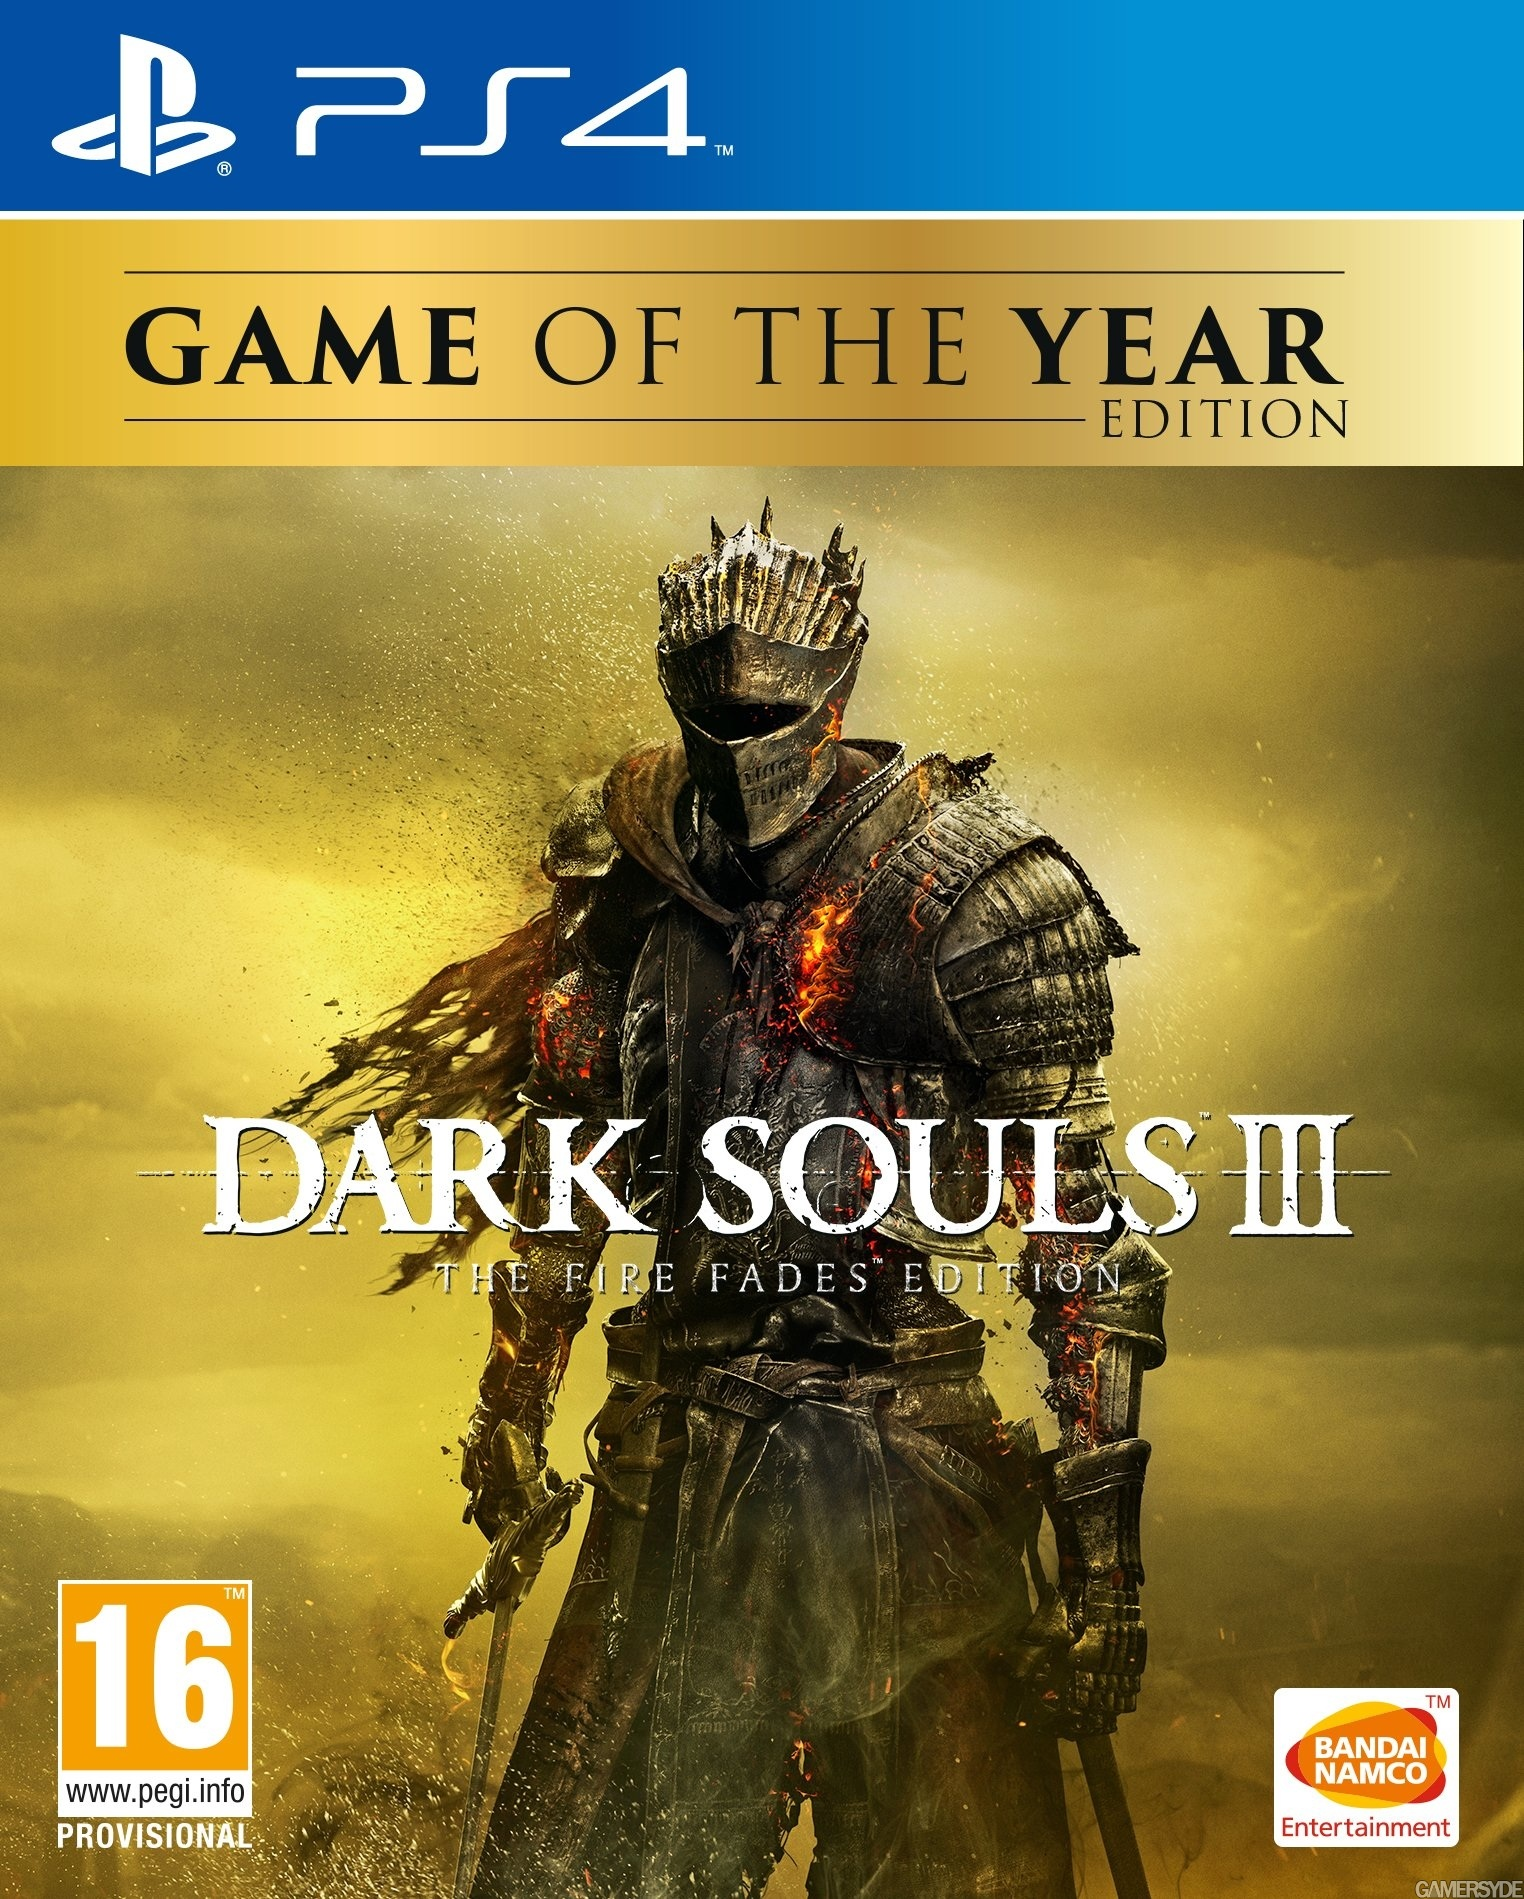 Dark Souls 3: The Fire Fades Edition [PS4] 5.05 / 6.72 / 7.02 [EUR] (2017) [Русский] (v1.03)